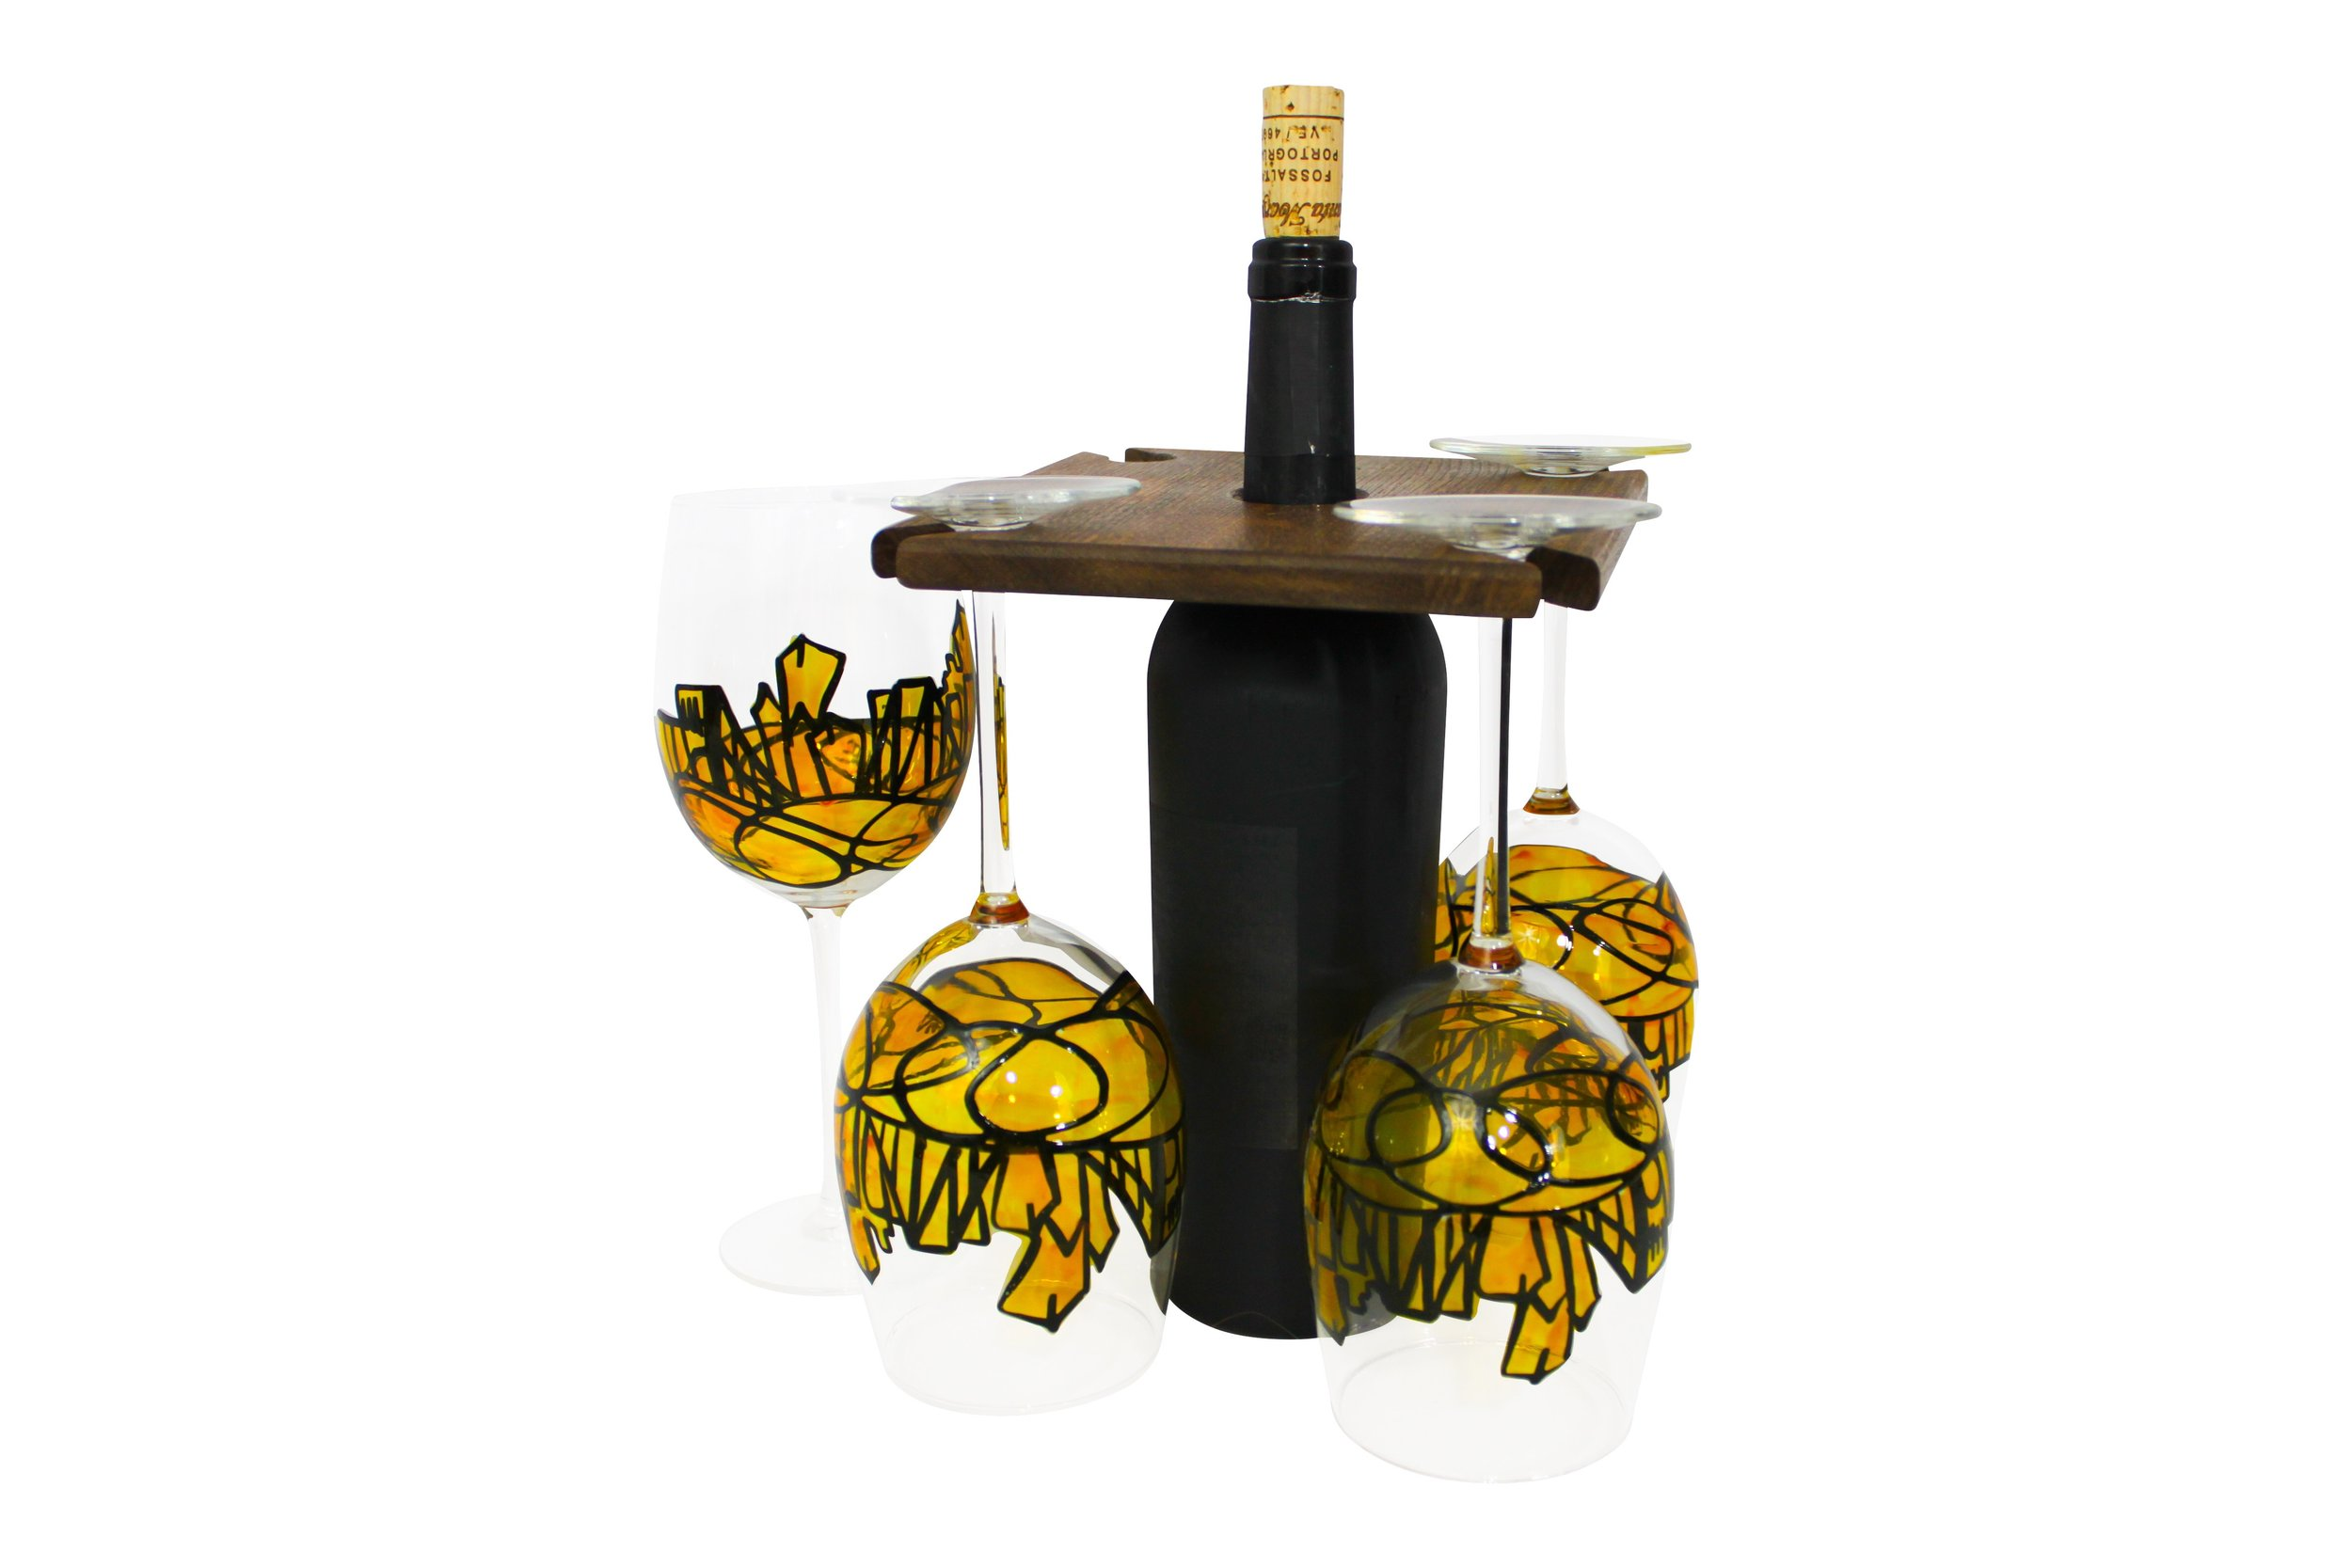 pittsburgh wine glasses pittsburgh gifts pittsburgh sports gifts hand painted glasses.jpg